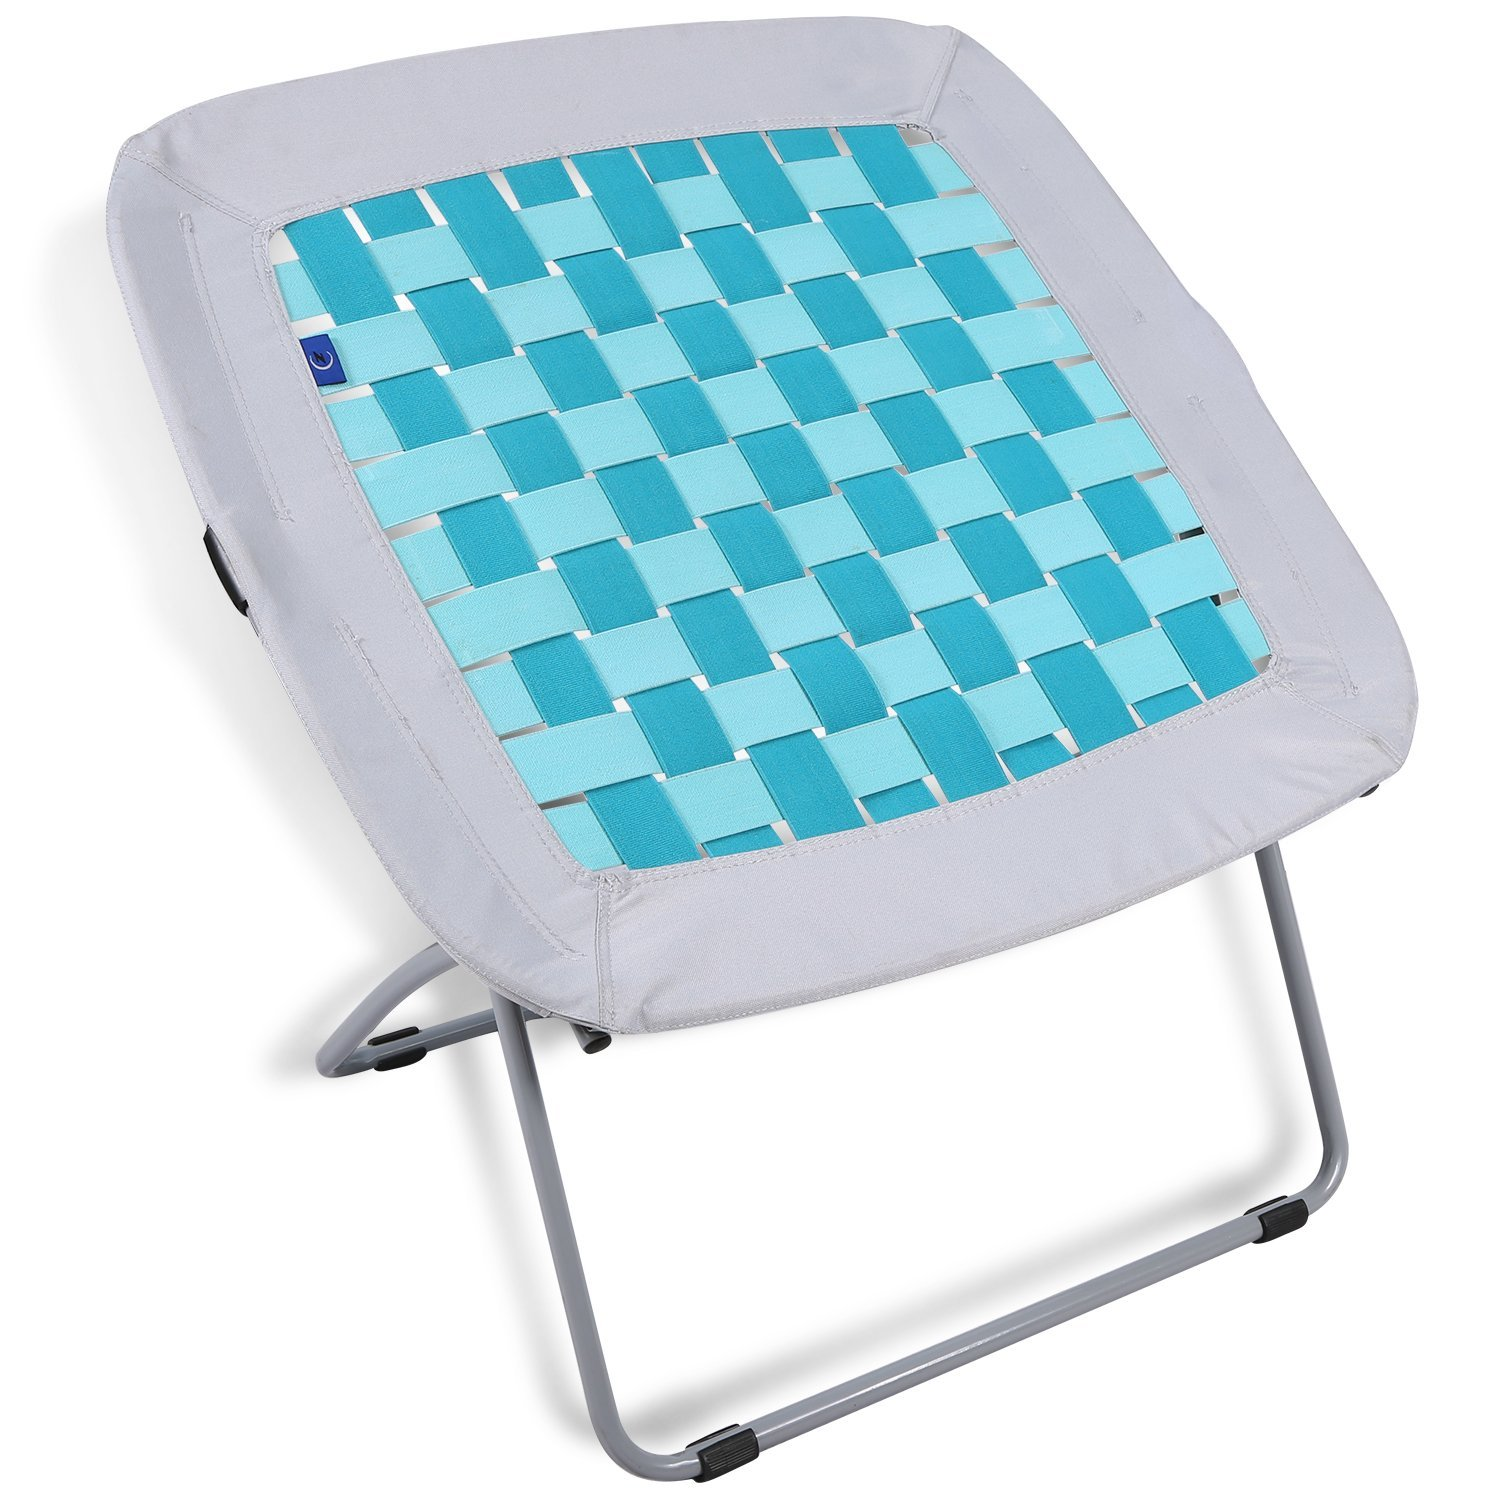 REDCAMP Folding Bungee Web Chair for Teens Kids Adults, 31x31.5x31.5 inches, White & Turquoise